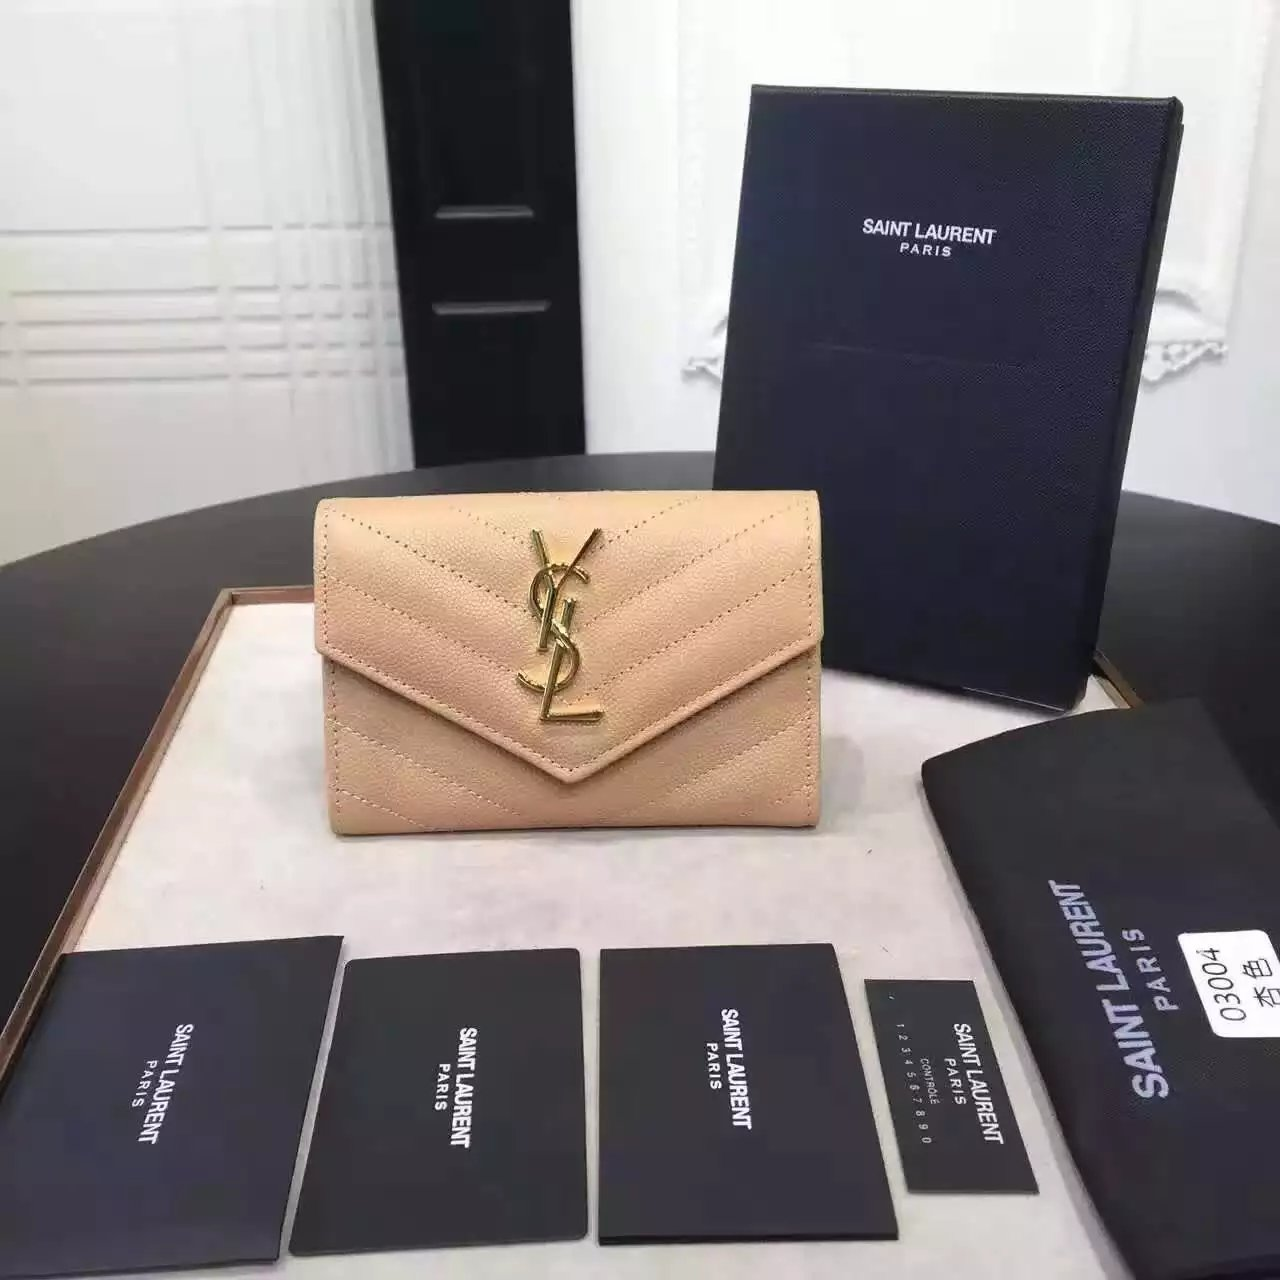 2016 Cheap YSL Out Sale with Free Shipping-Saint Laurent Envelope Wallet in Powder Grain de Poudre Textured Matelassé Leather